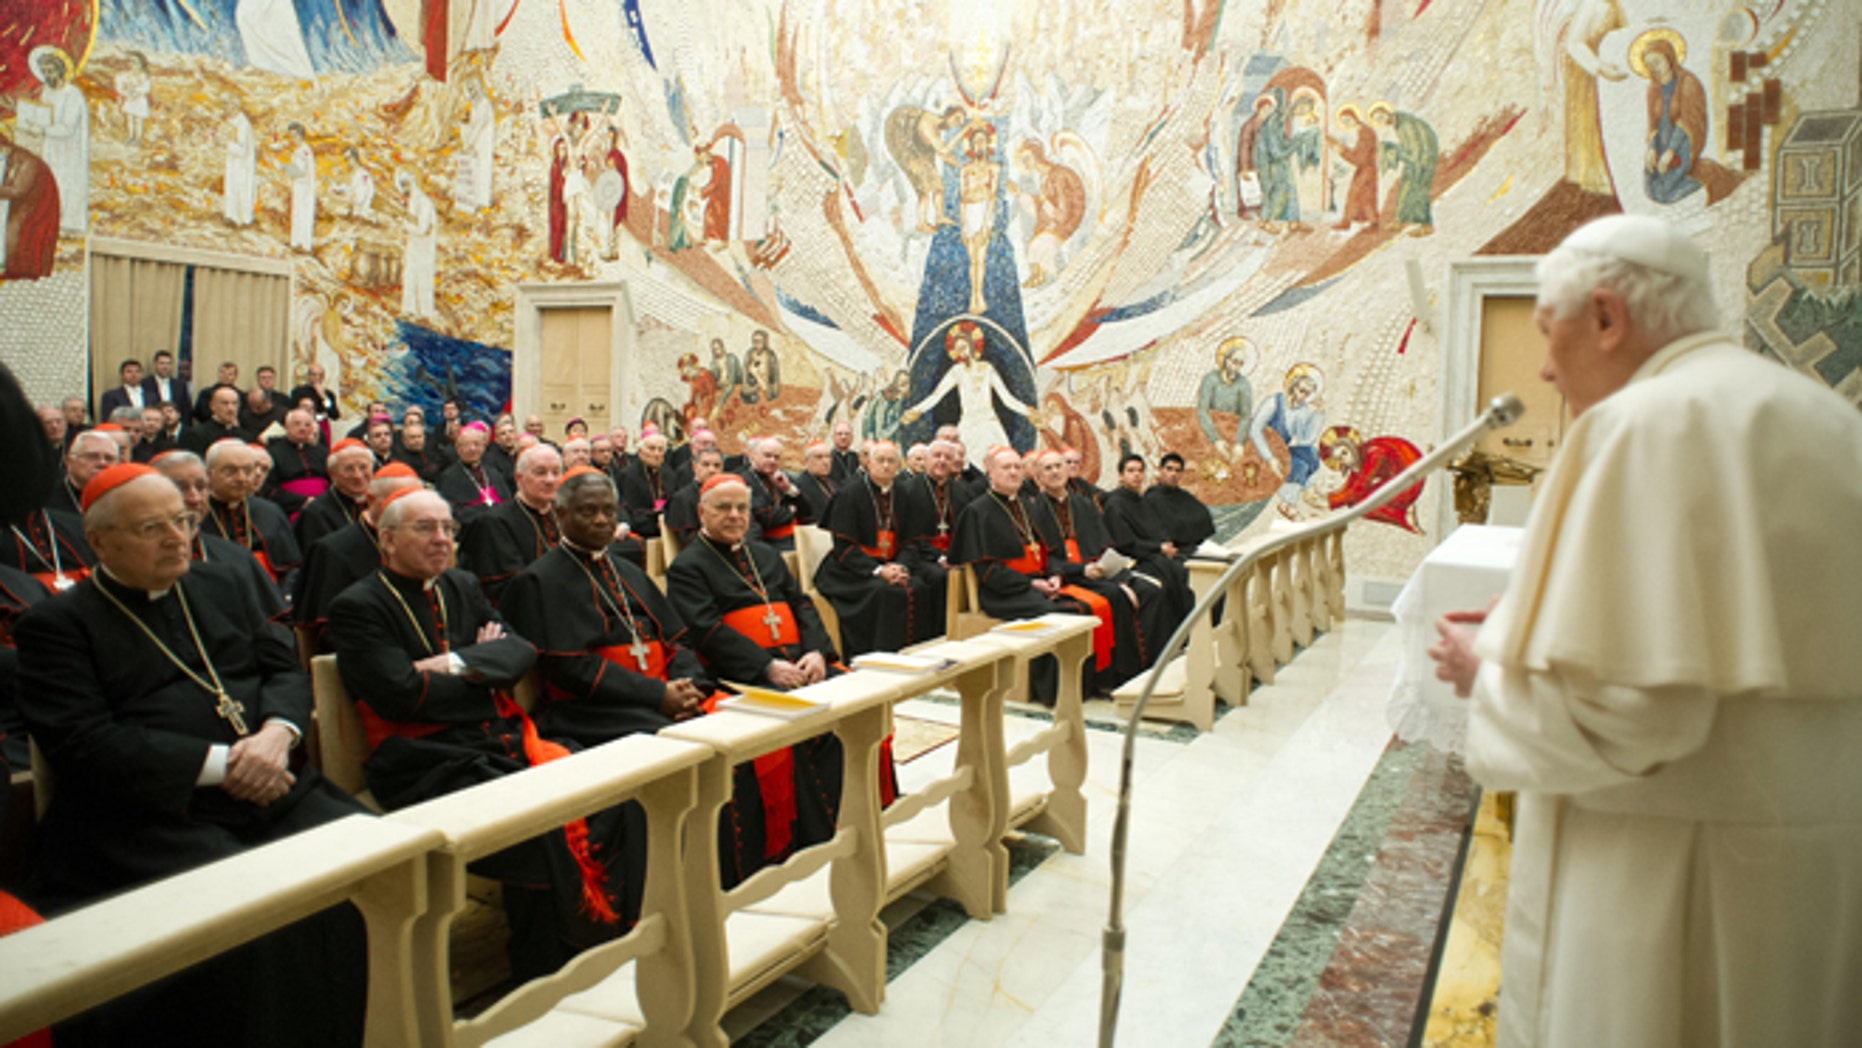 Feb. 23, 2013: In this photo provided by the Vatican newspaper L'Osservatore Romano, Pope Benedict XVI, right, delivers his message concluding a weeklong spiritual retreat, at the Vatican.